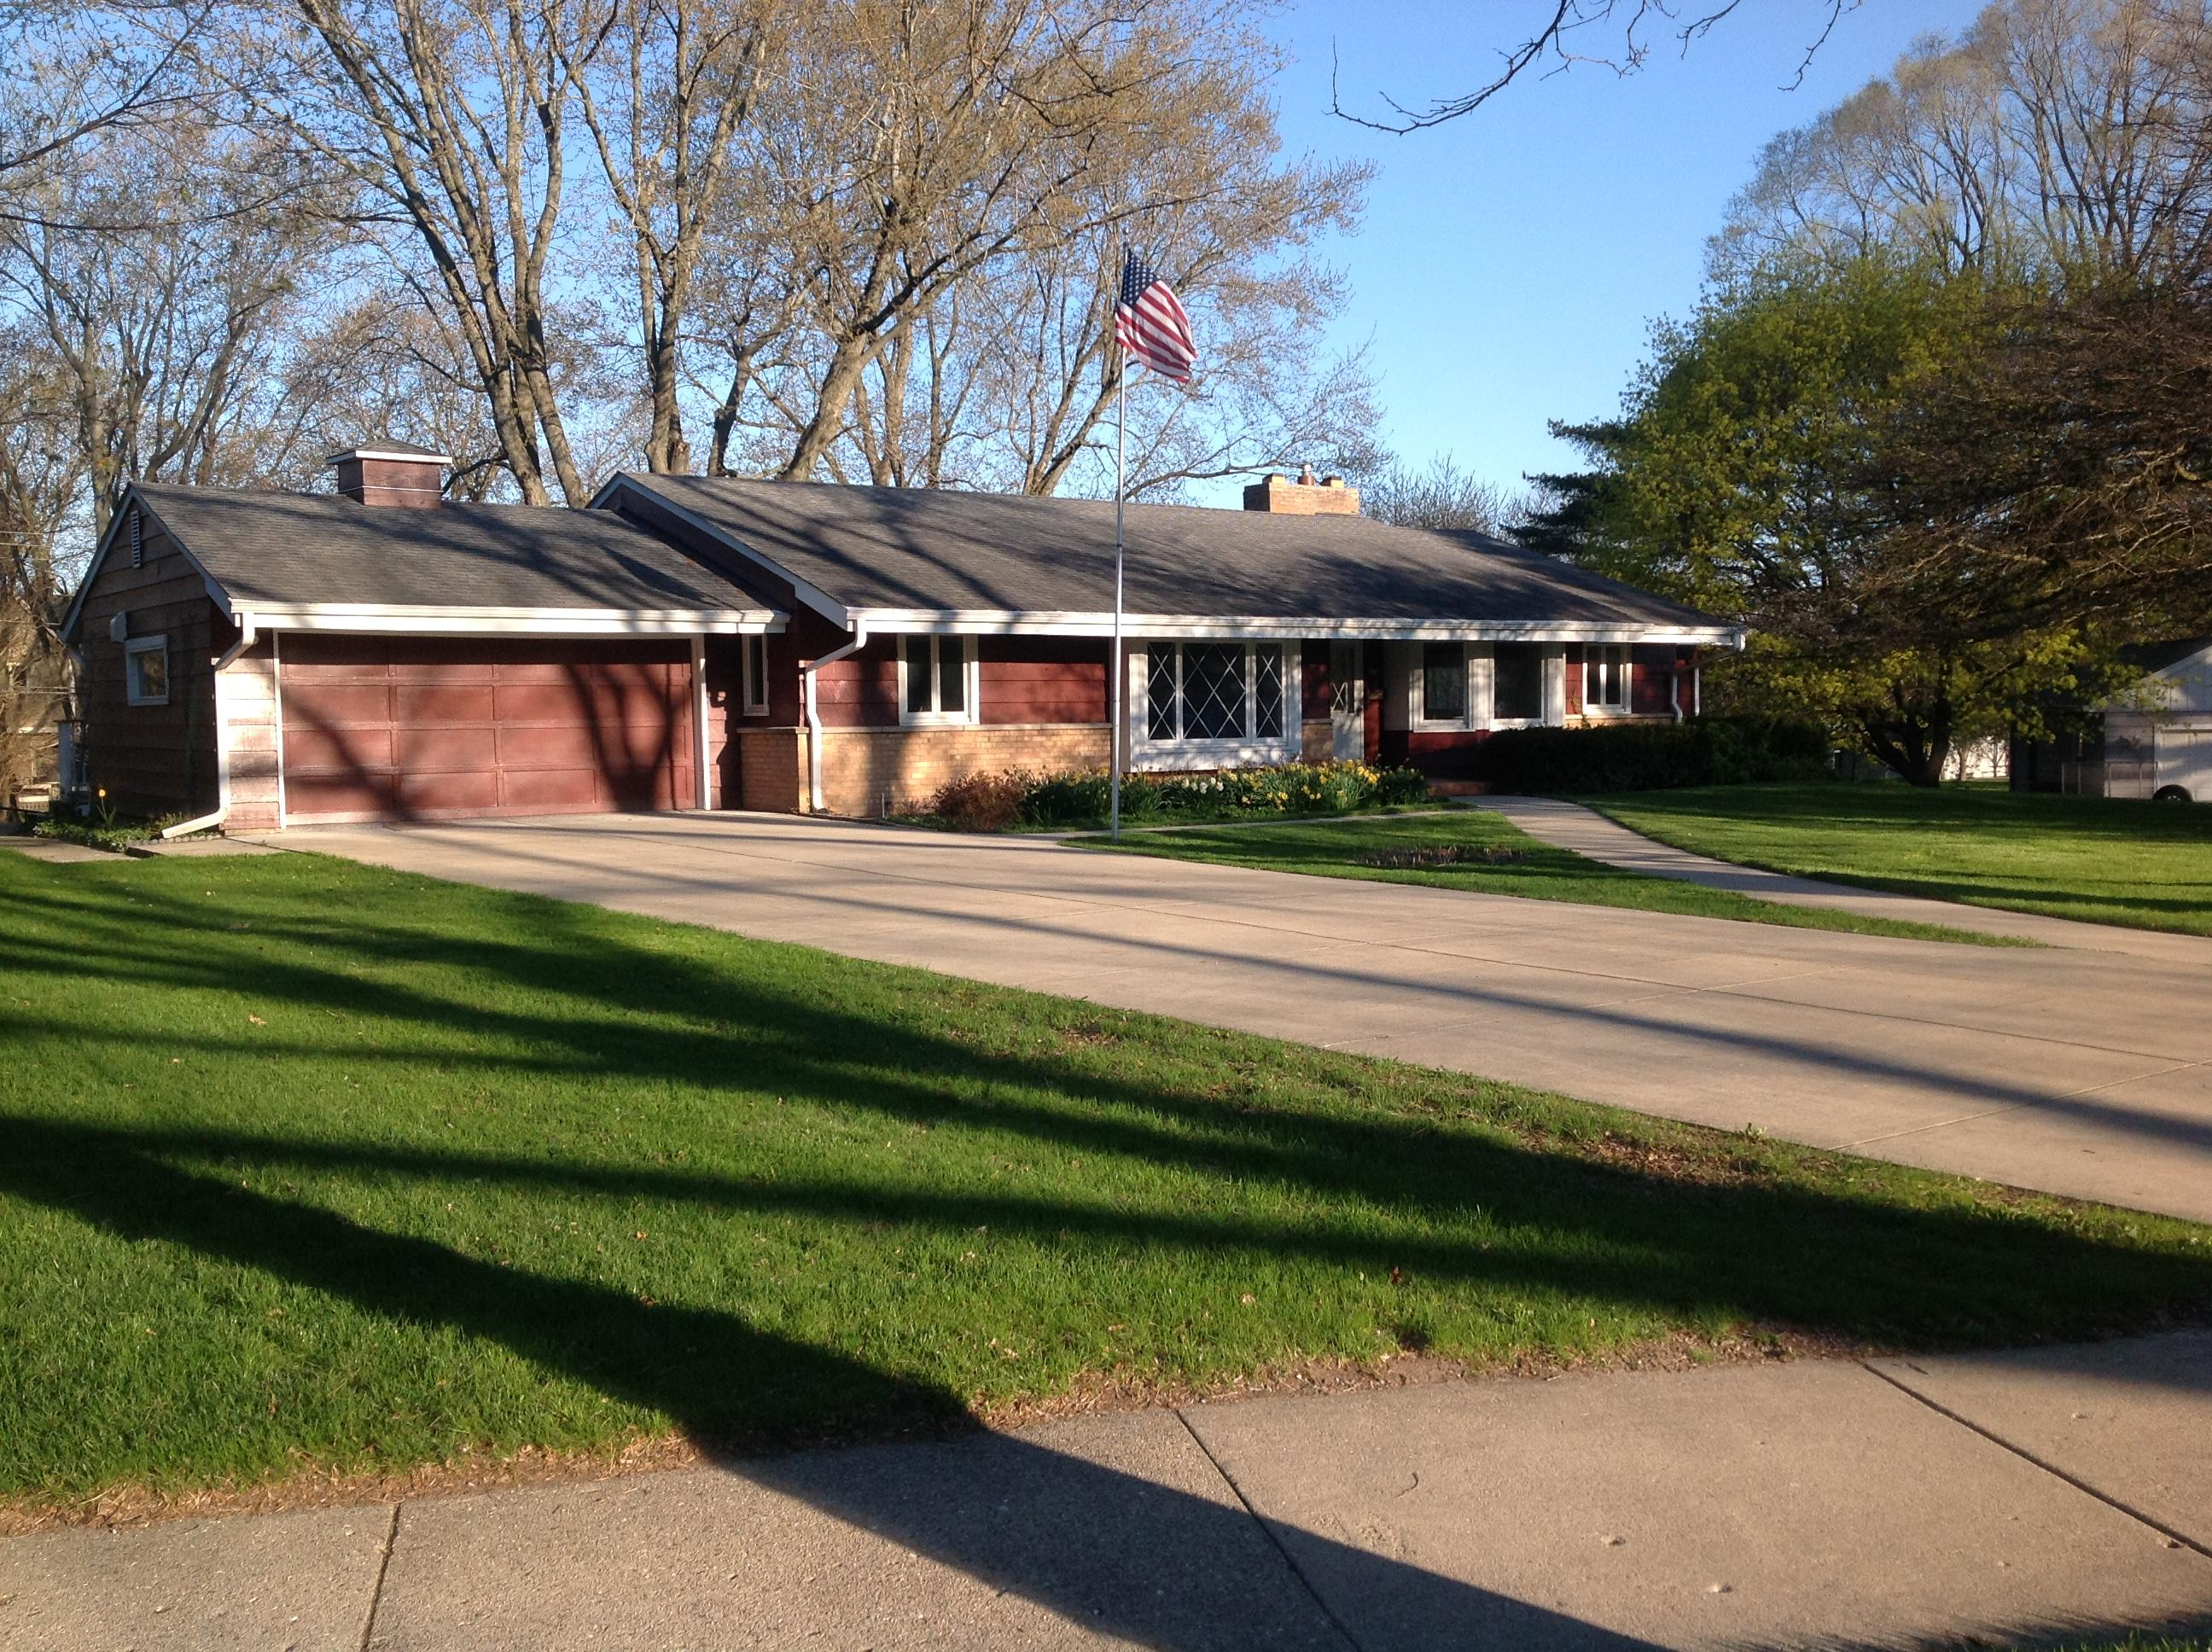 202 Westminster Dr, Waukesha, Wisconsin 53186, 5 Bedrooms Bedrooms, 10 Rooms Rooms,2 BathroomsBathrooms,Single-Family,For Sale,Westminster Dr,1688110